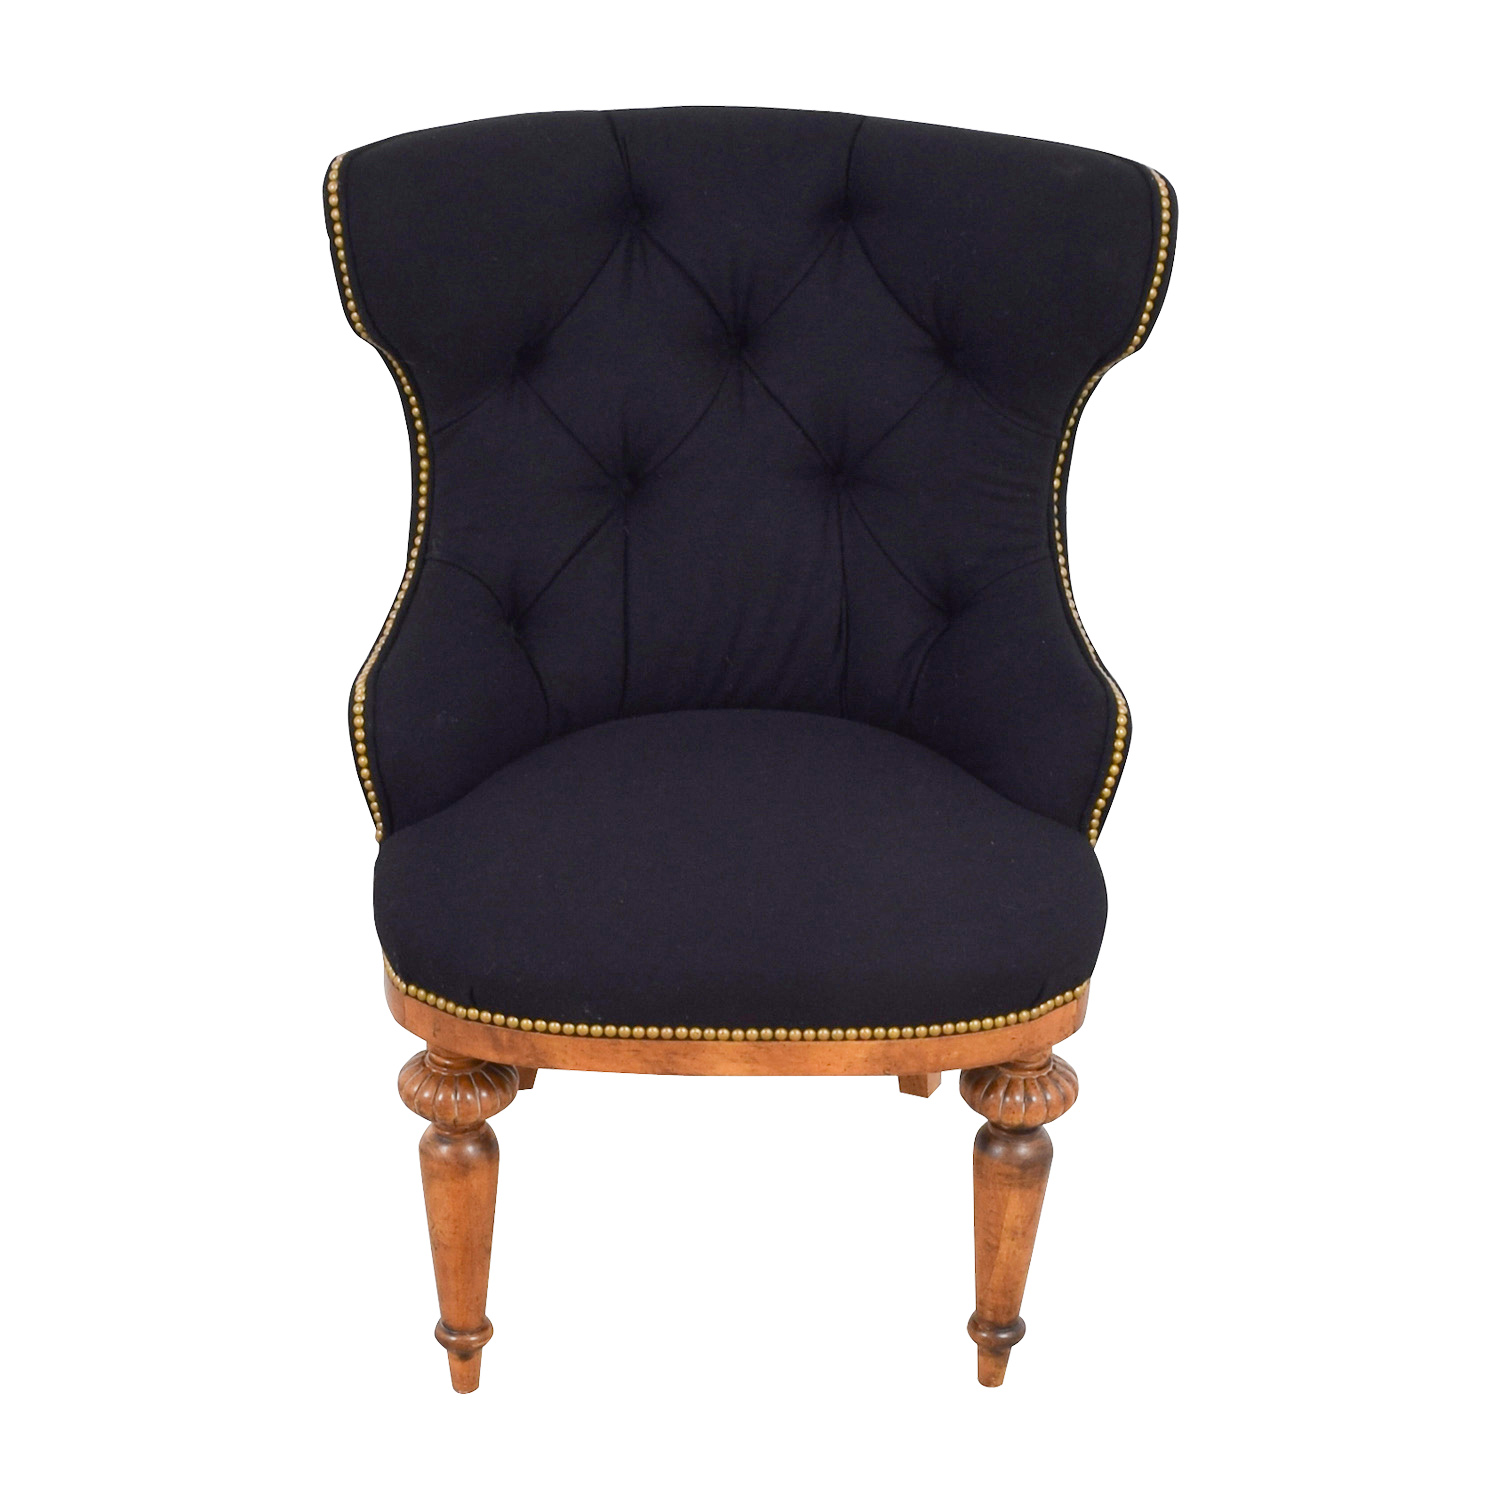 Furniture Masters Black Tufted Nailhead and Wood Accent Chair / Chairs